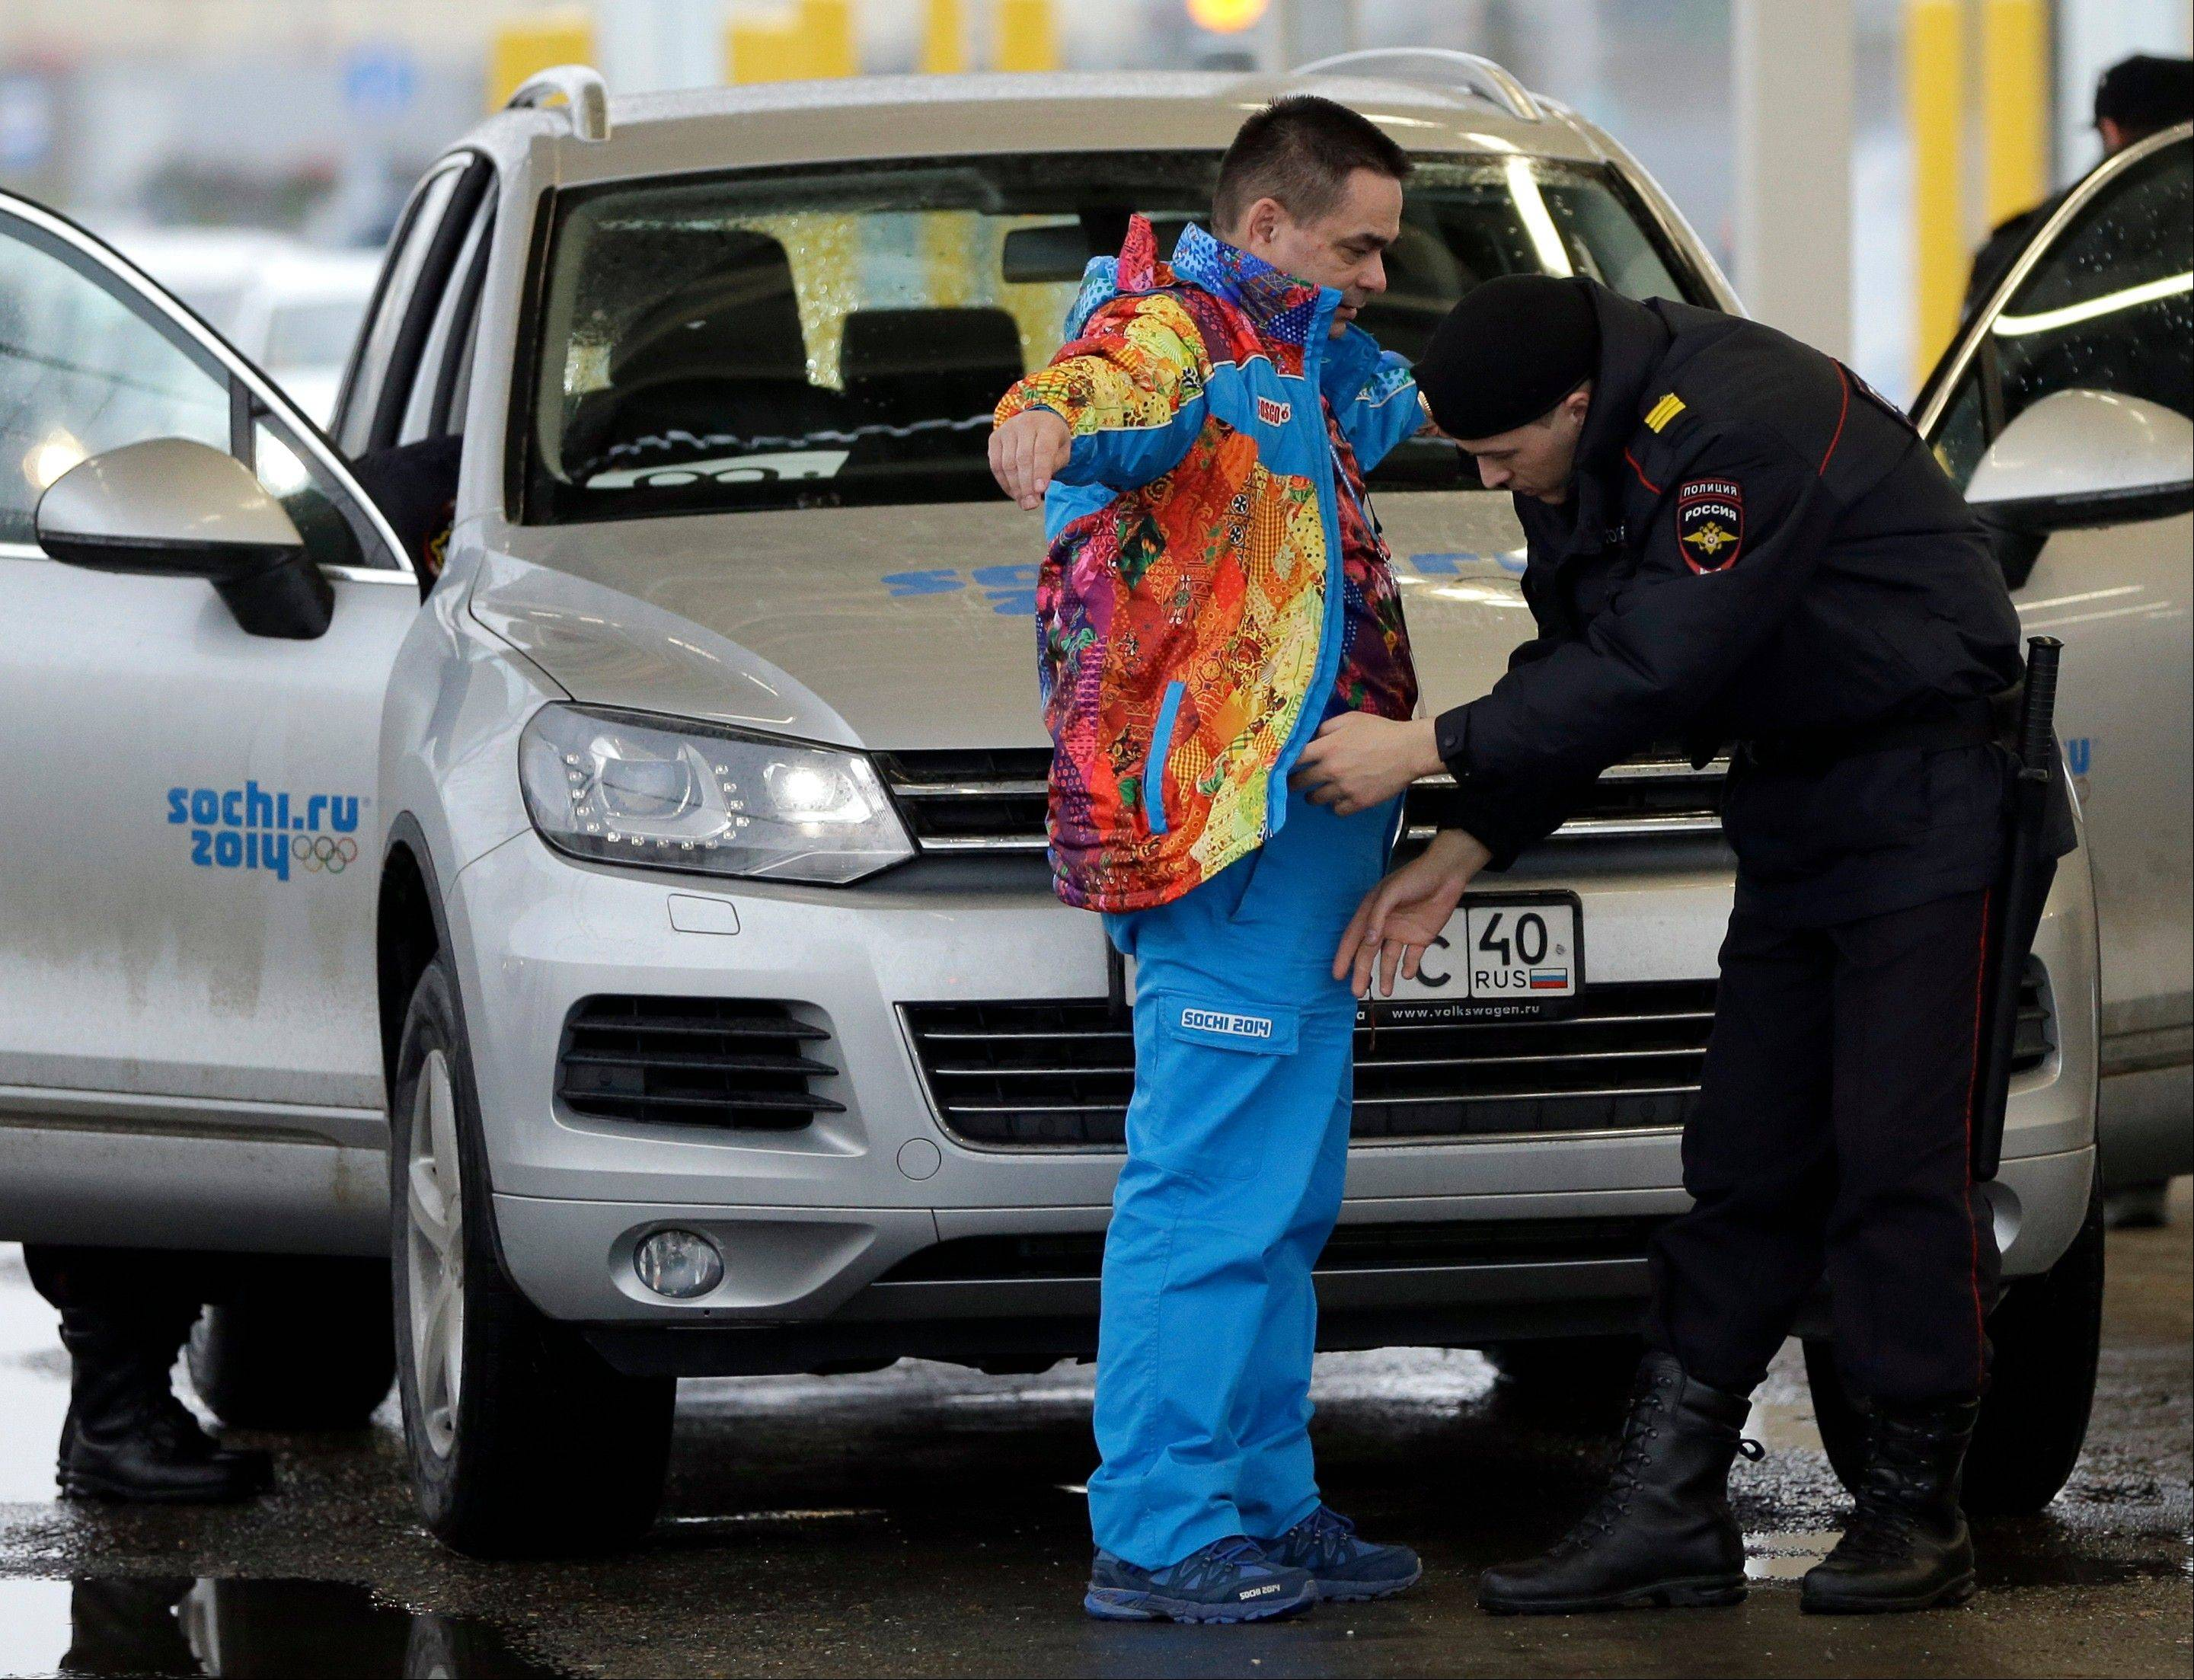 A Russian police officer searches a driver as his vehicle is also screened at an entrance to the Sochi 2014 Olympic Winter Games park, Thursday, Jan. 23, 2014, in Sochi, Russia. The Olympics begin on Feb. 7.